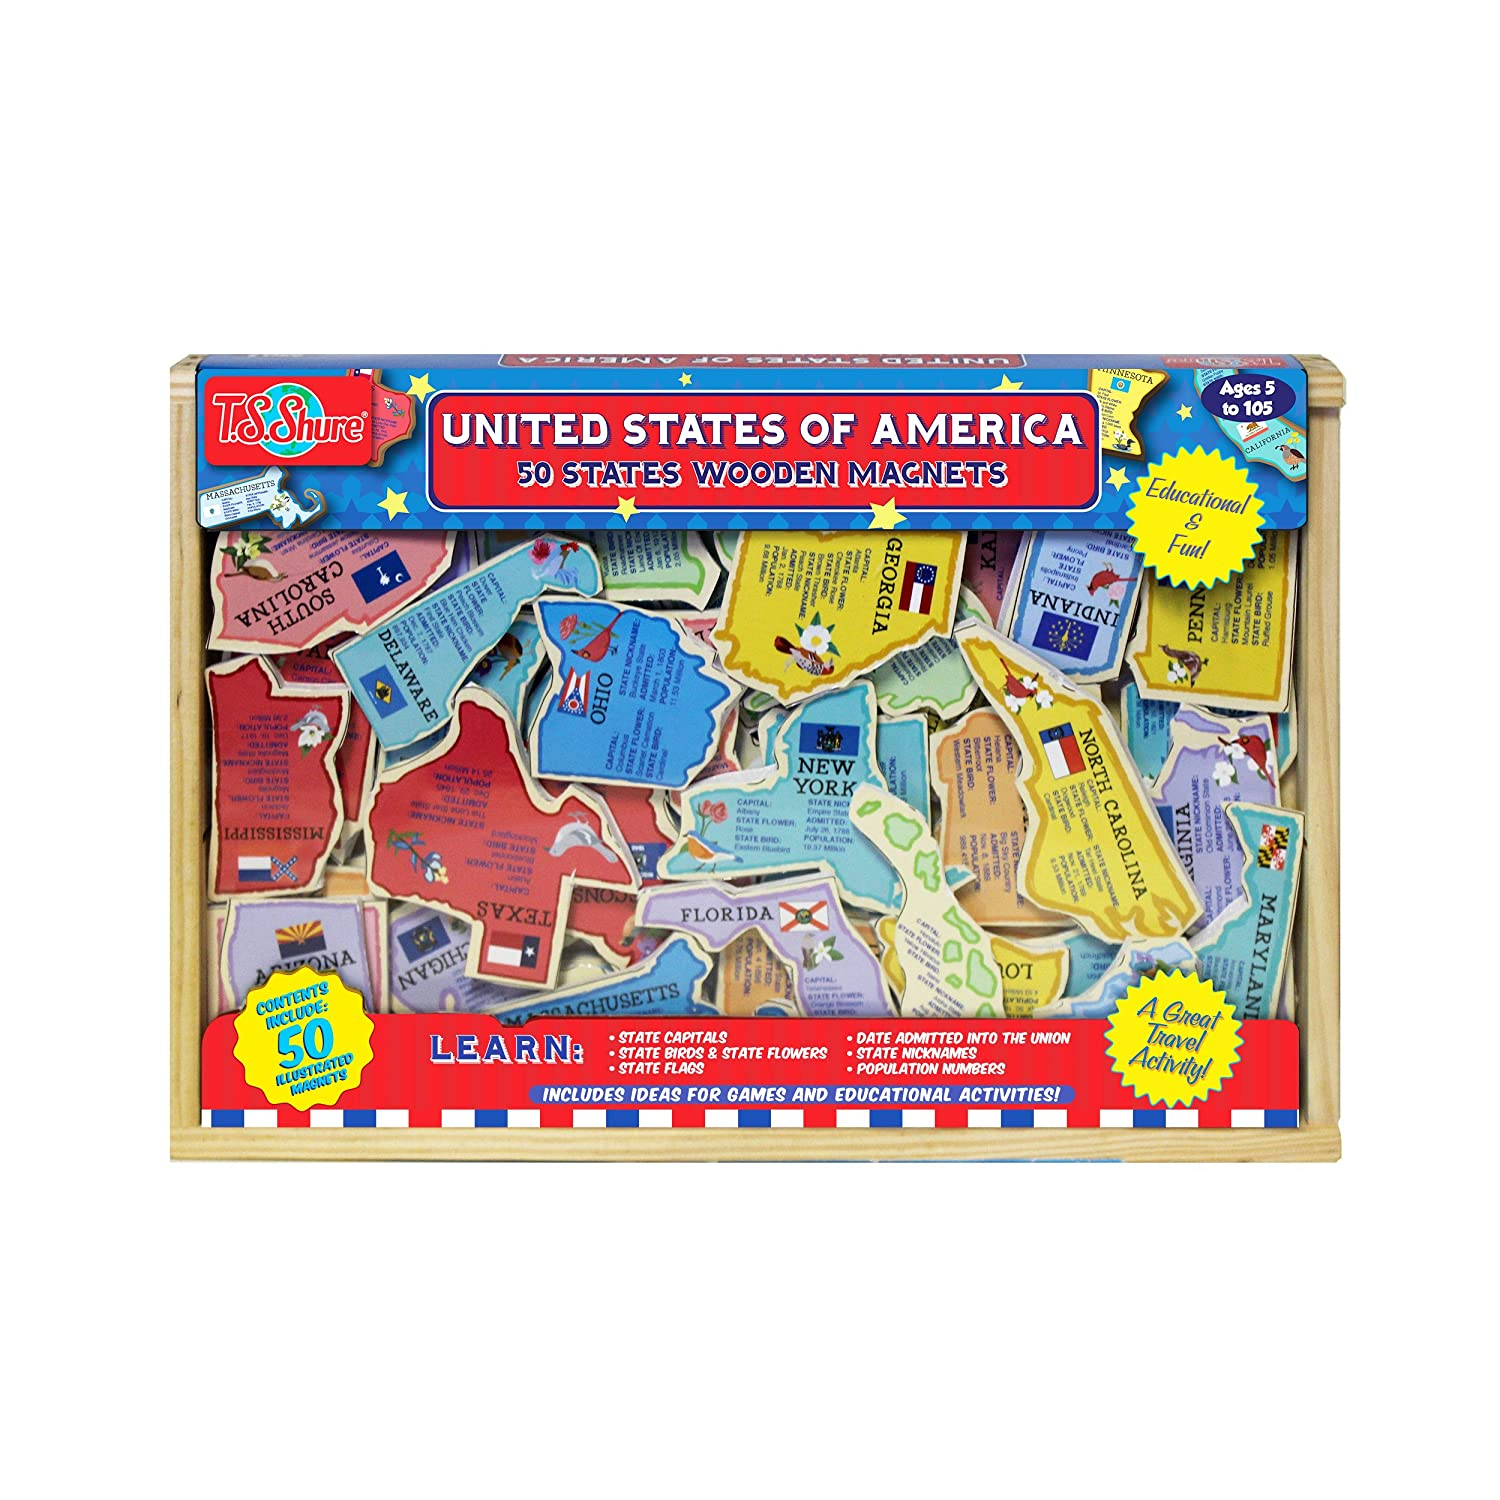 Amazon.com: T.S. Shure United States of America: 50 States ... on 50 states magnets, 50 states stickers, 50 states colors, 50 states homework, 50 states vocabulary, 50 states clip art, 50 states coloring, 50 states and capitals puzzle, 50 states math, 50 states printable,